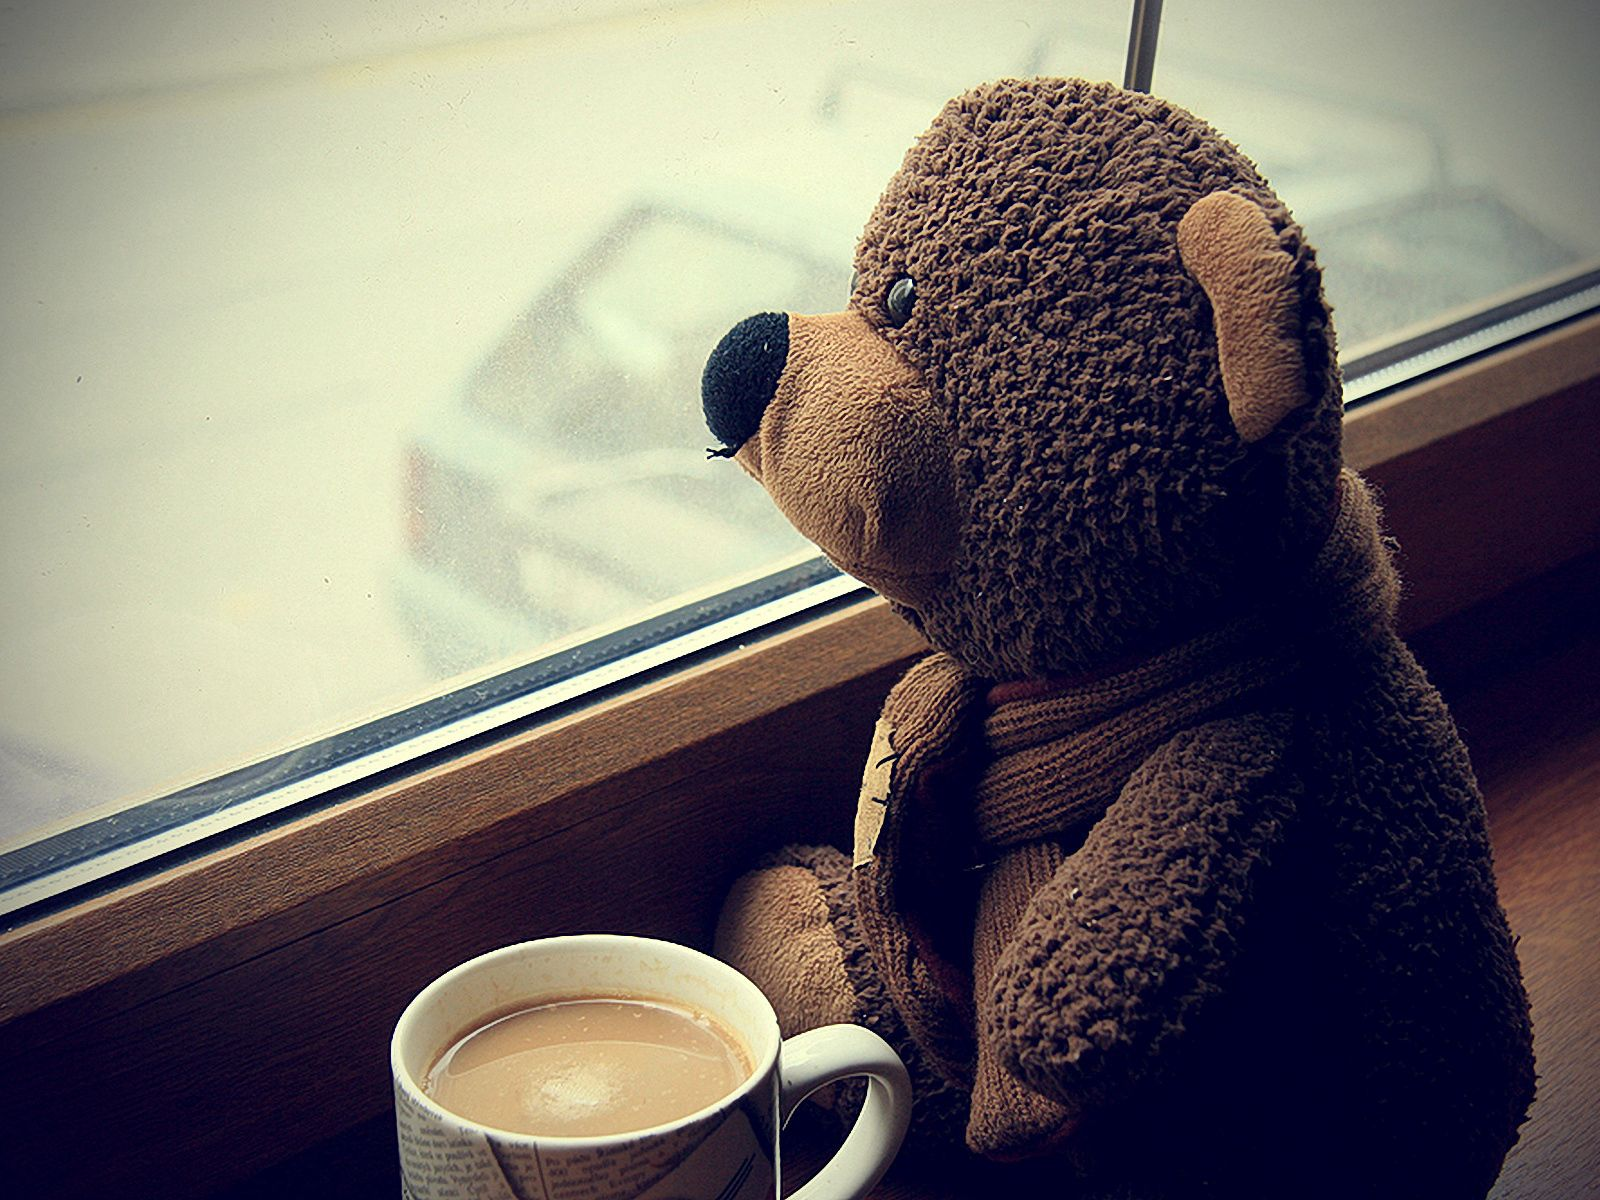 156049 download wallpaper Teddy Bear, Coffee, Miscellanea, Miscellaneous, Cup, Toy, Window, Mood, Expectation, Waiting screensavers and pictures for free